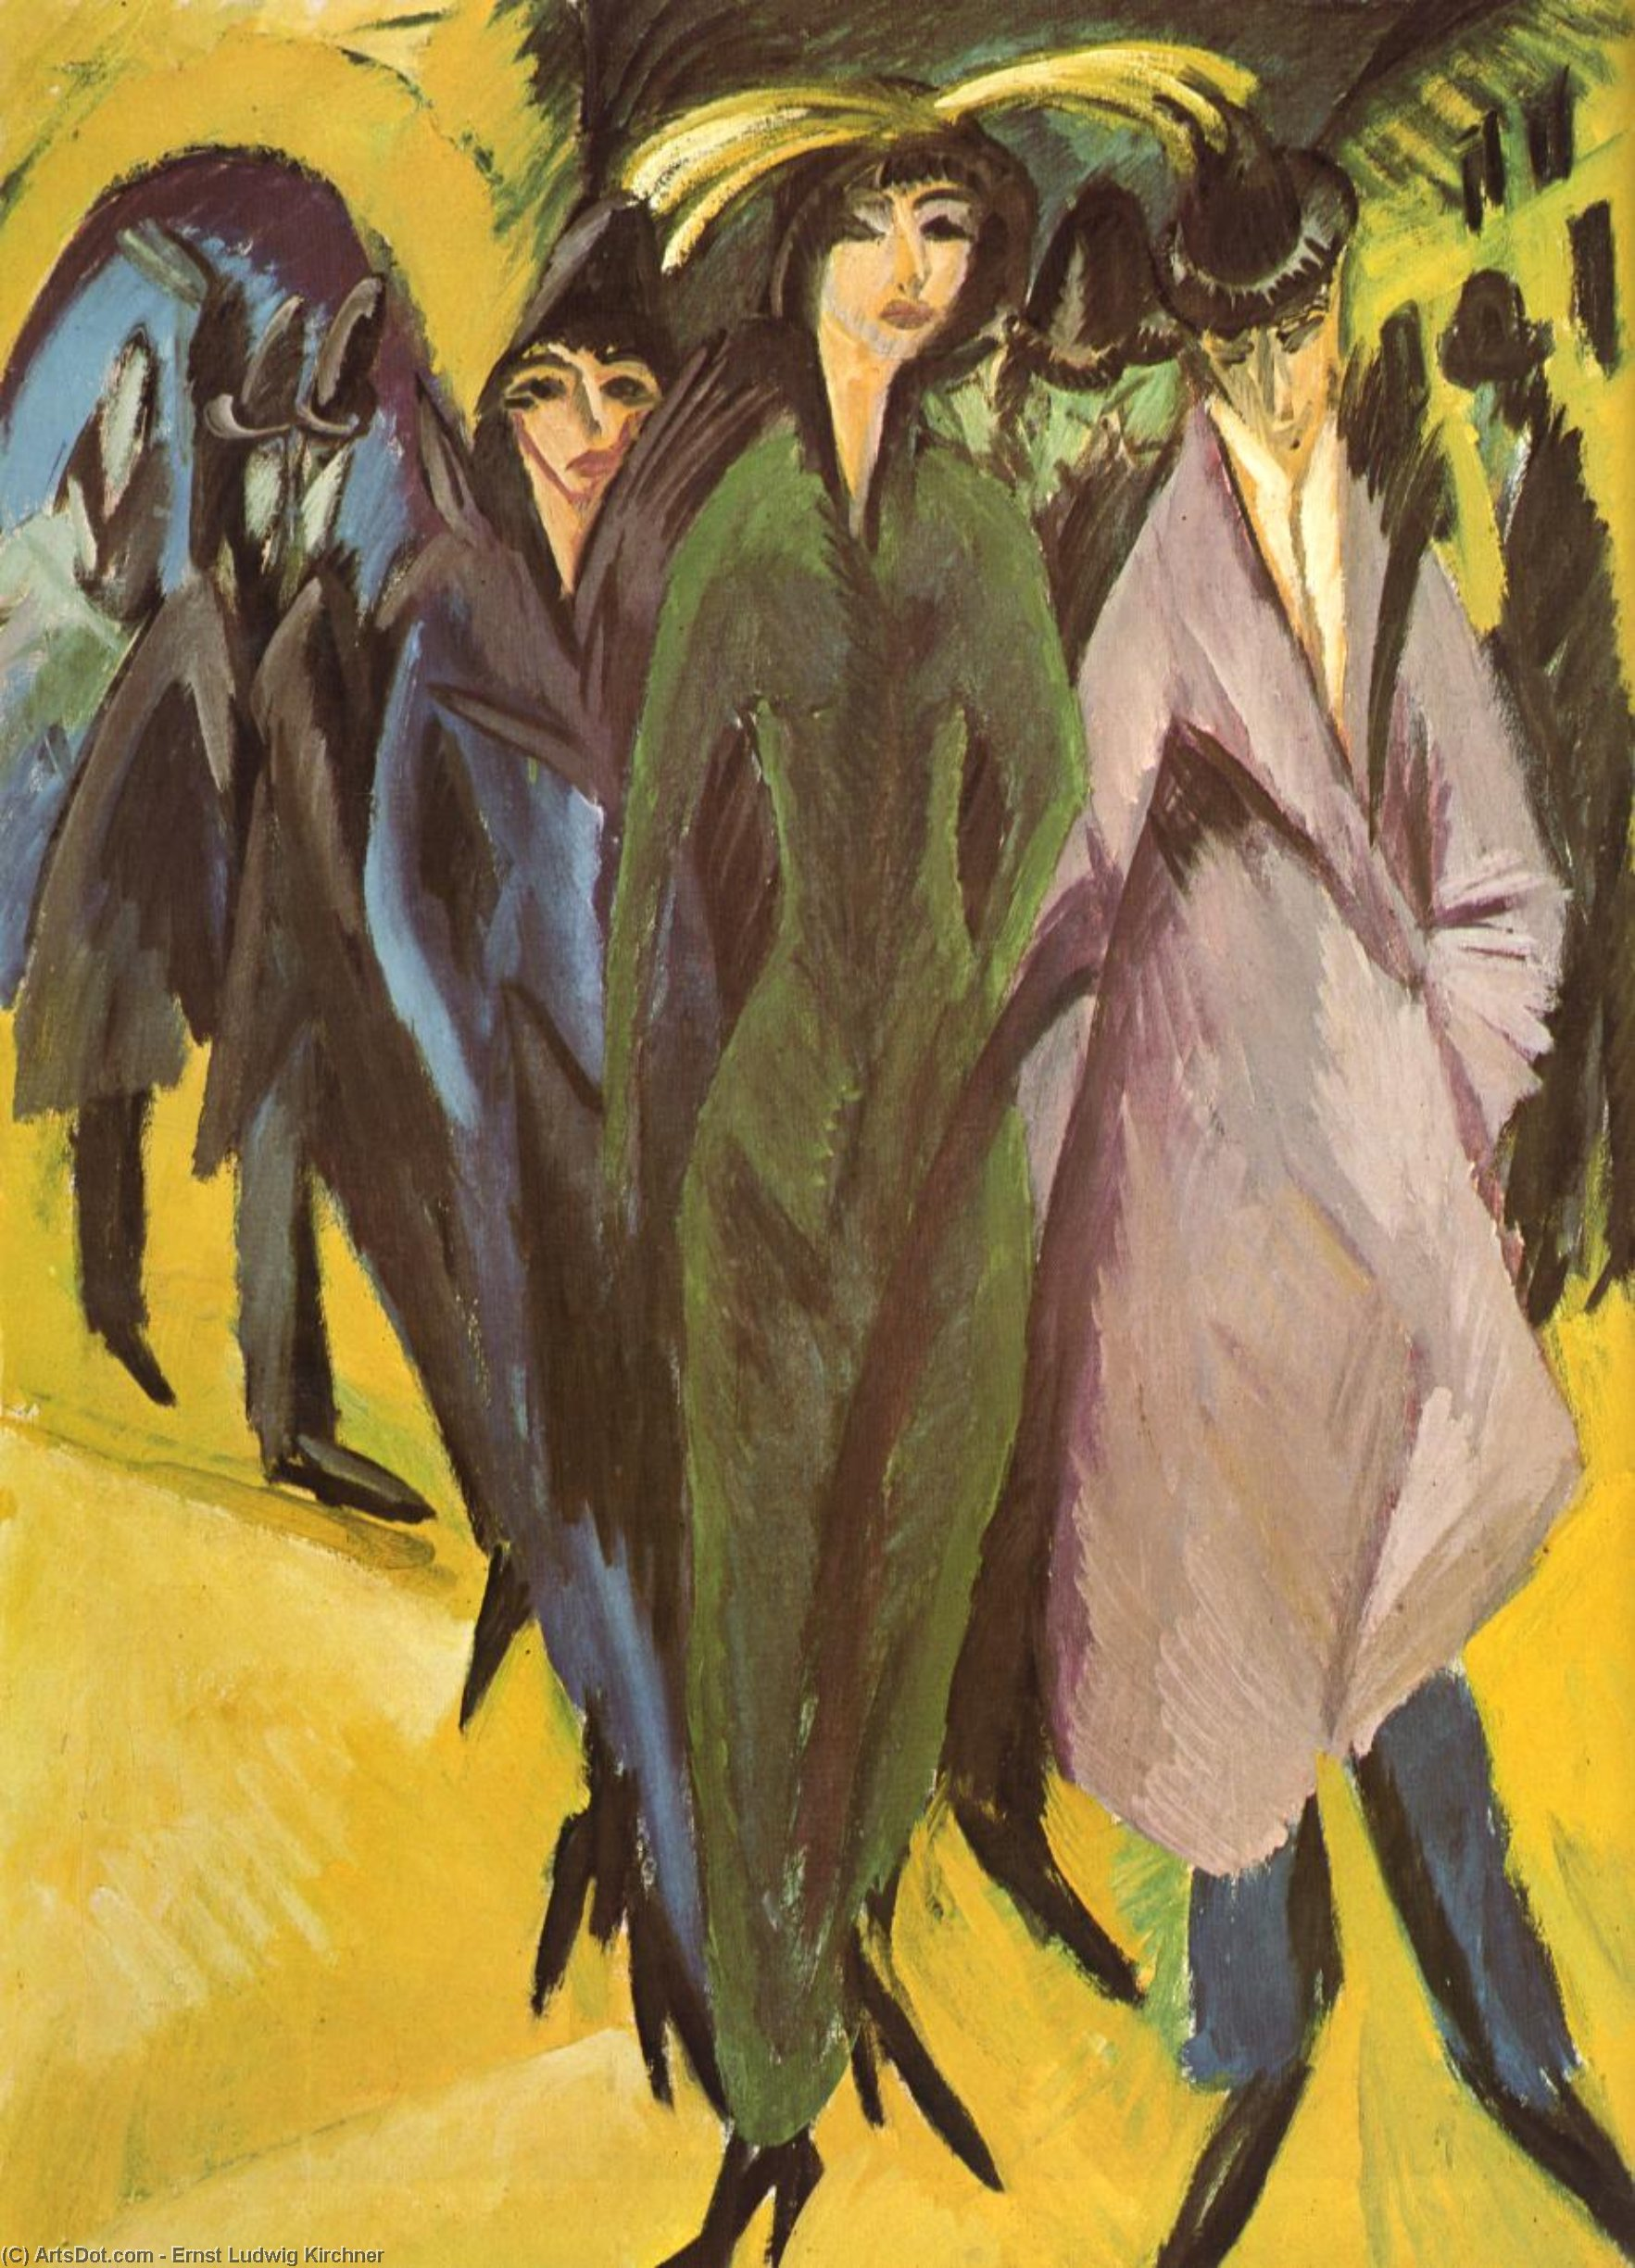 Wikioo.org - The Encyclopedia of Fine Arts - Painting, Artwork by Ernst Ludwig Kirchner - Women in the street